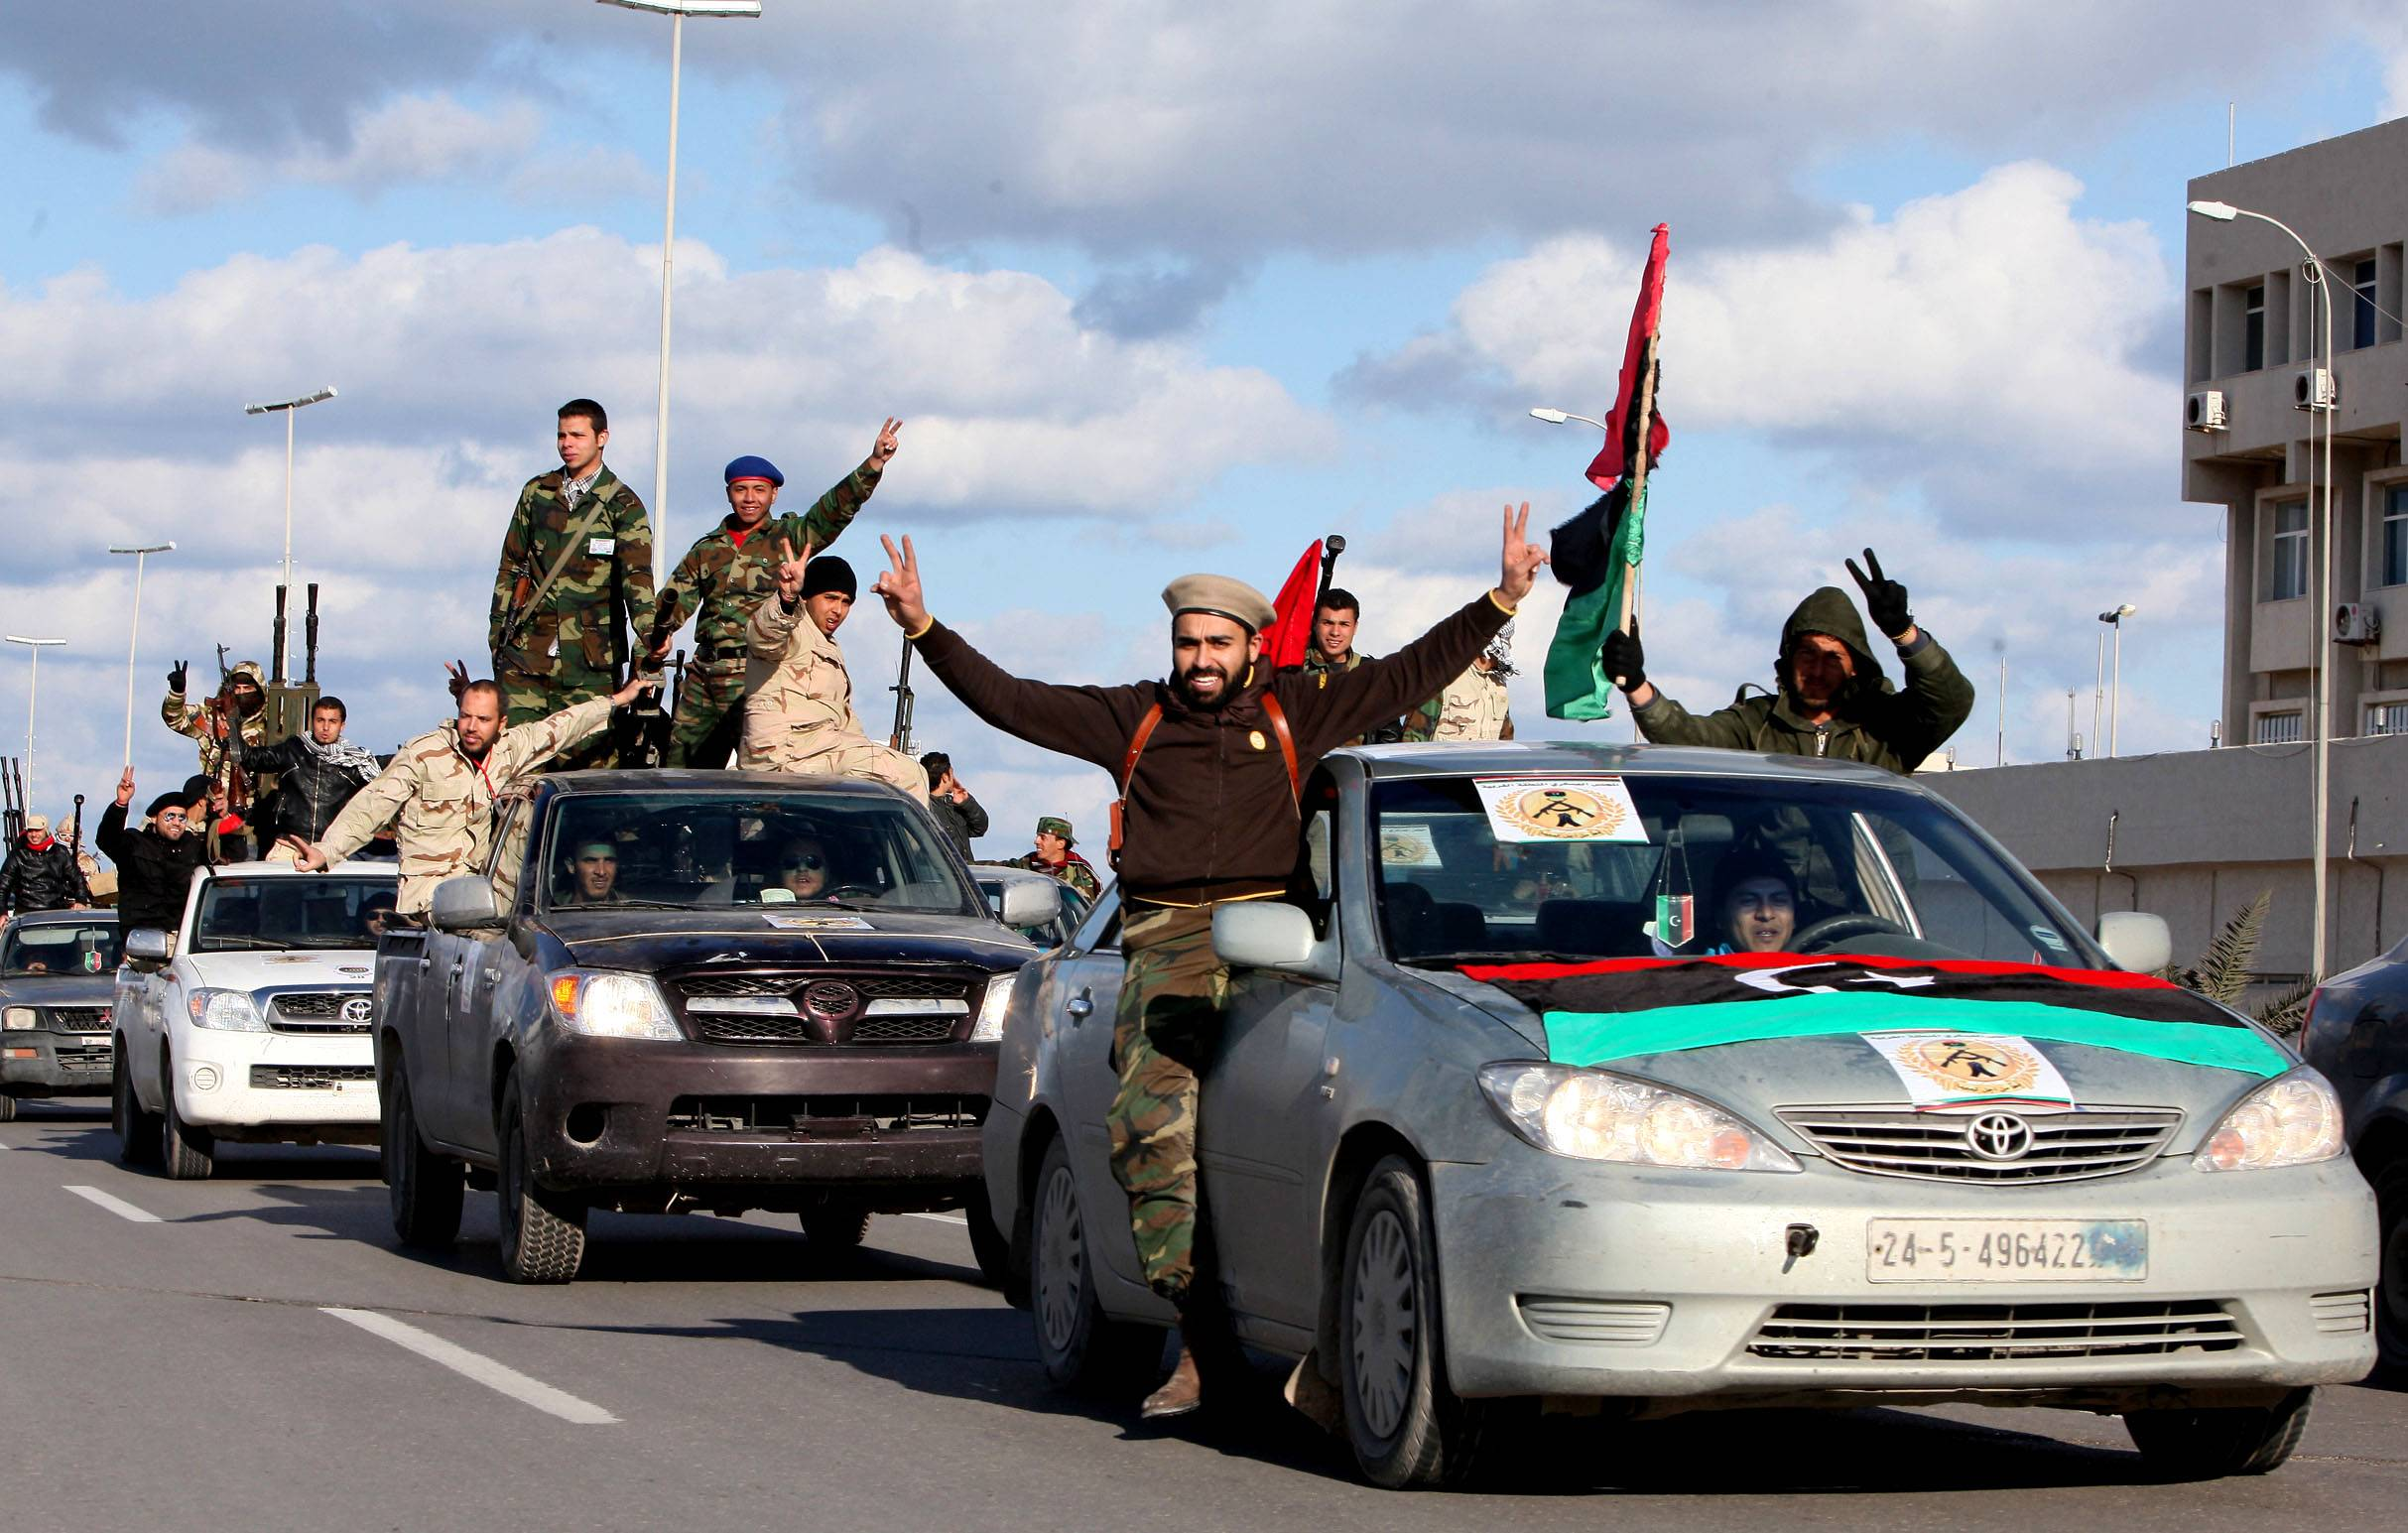 Libyan militias from towns throughout the country's west parade through Tripoli, Libya.